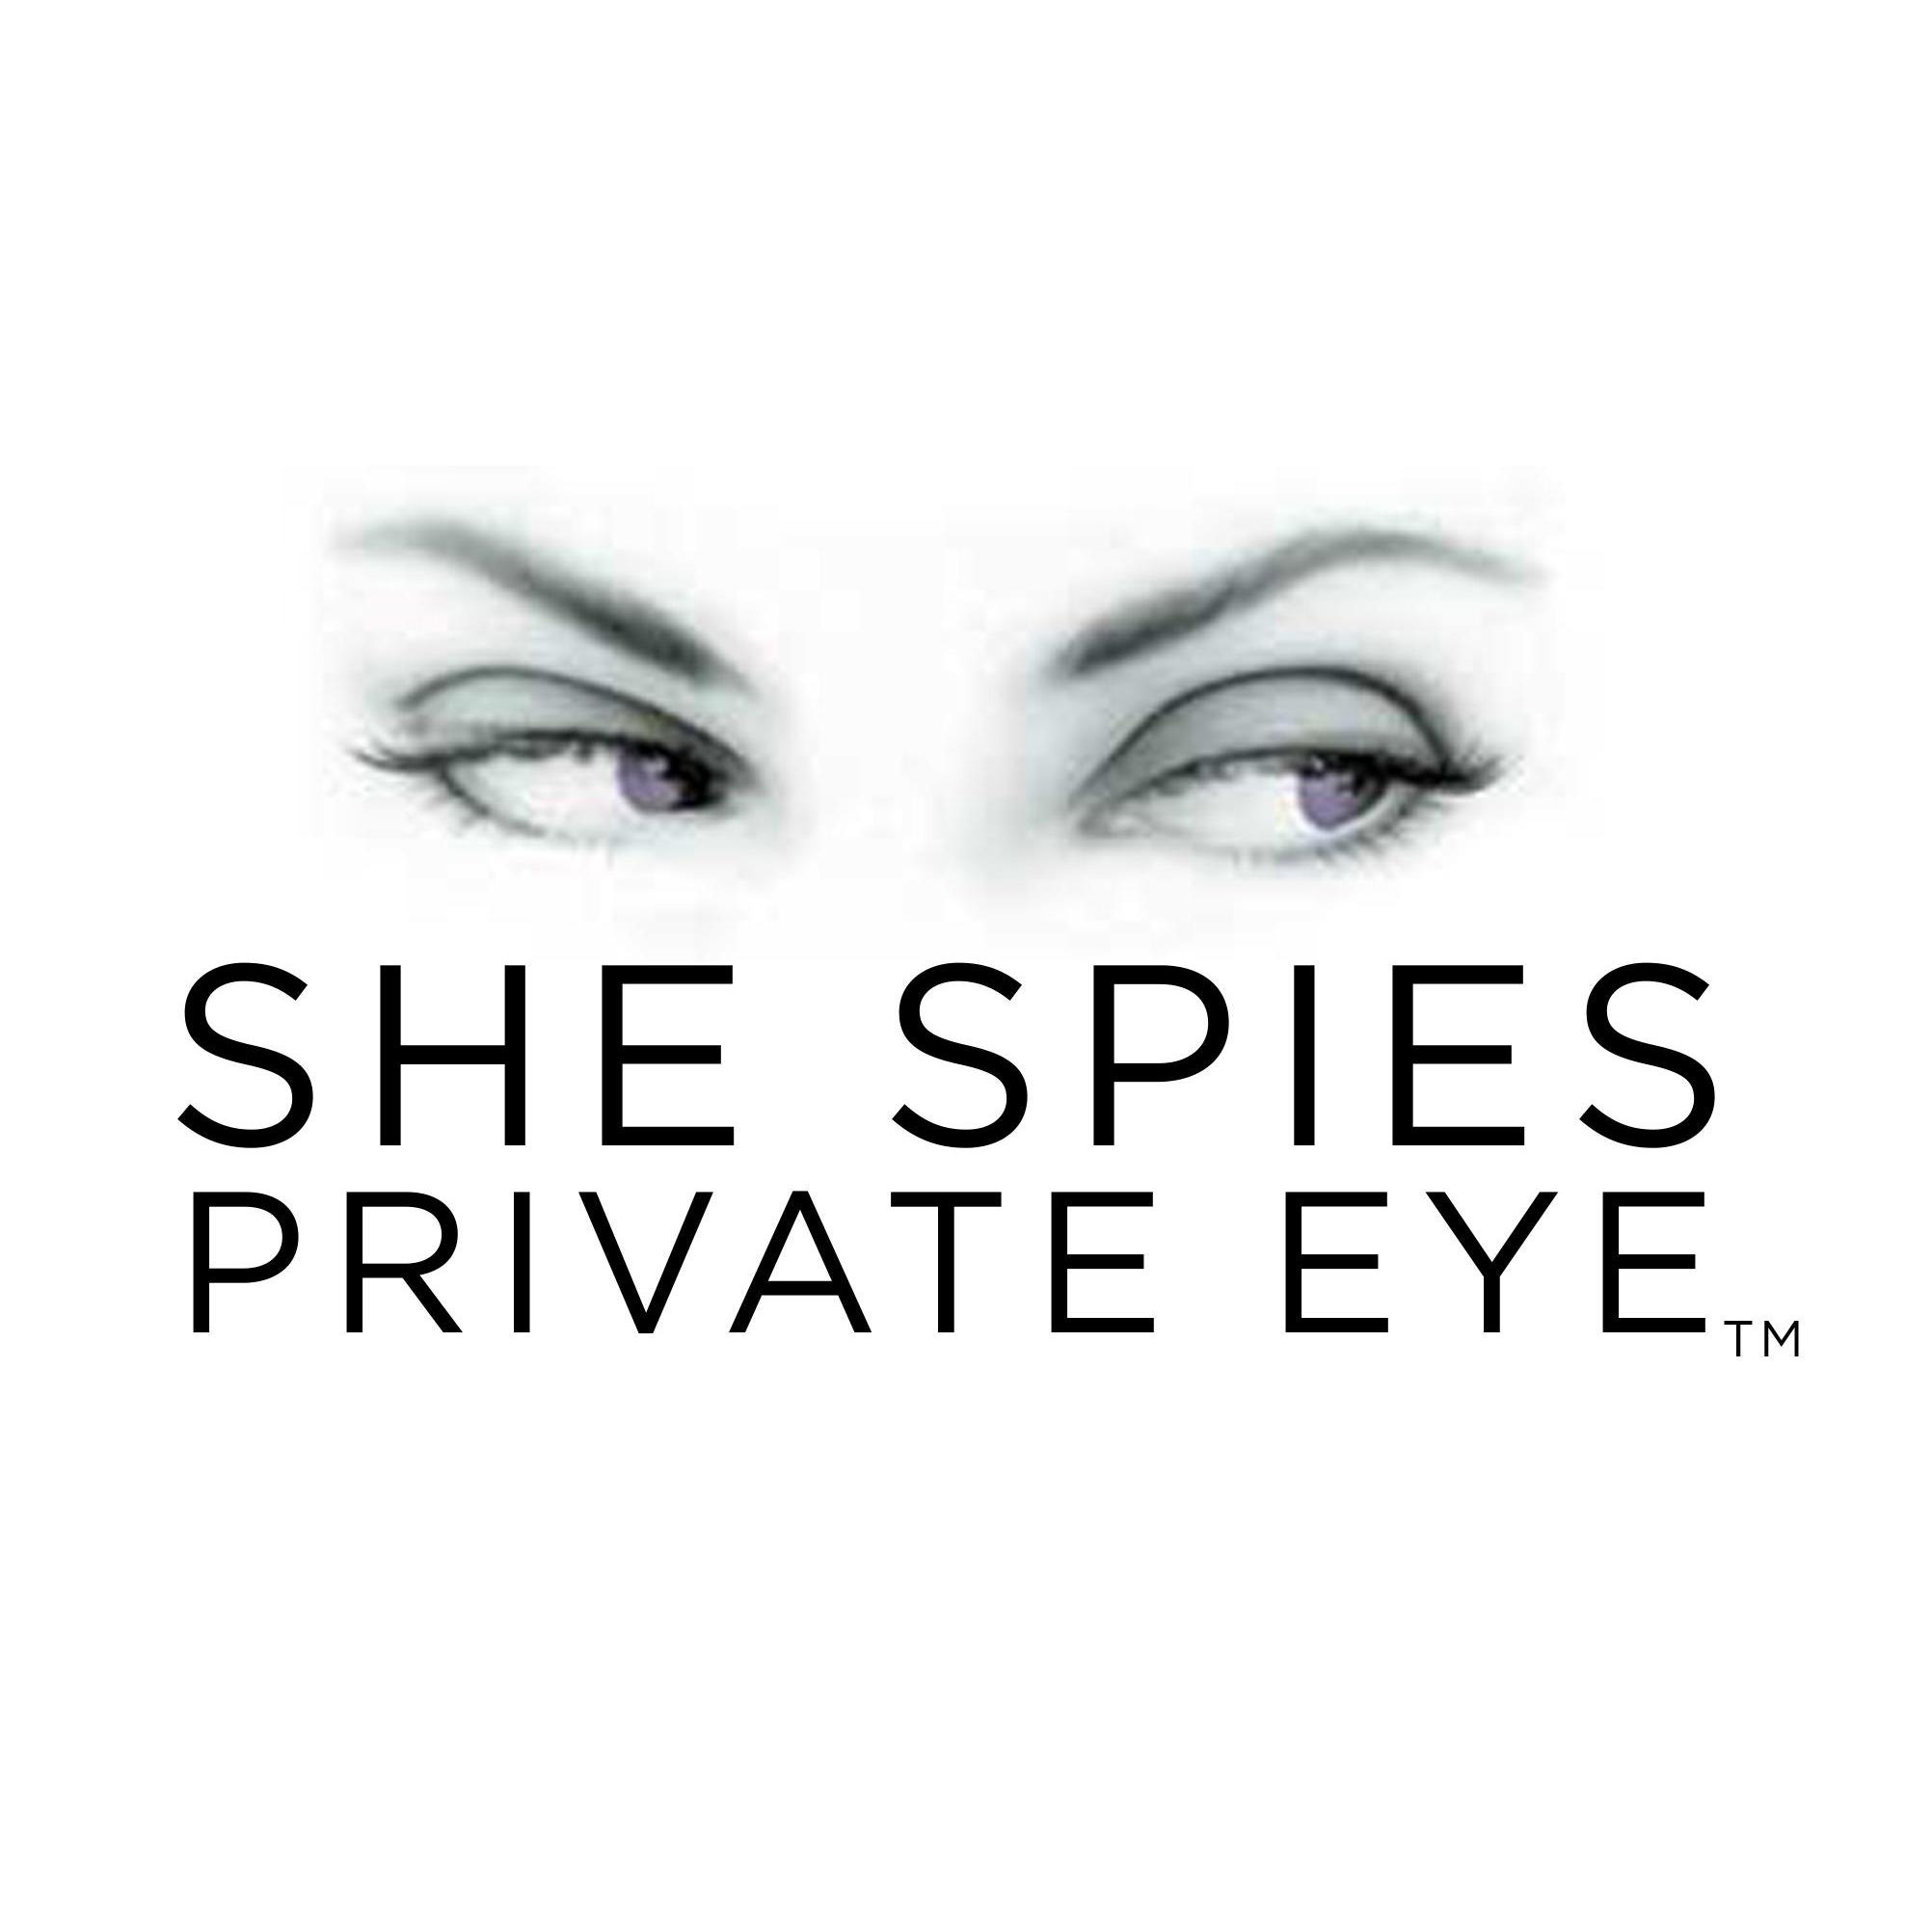 She Spies Private Eye Inc